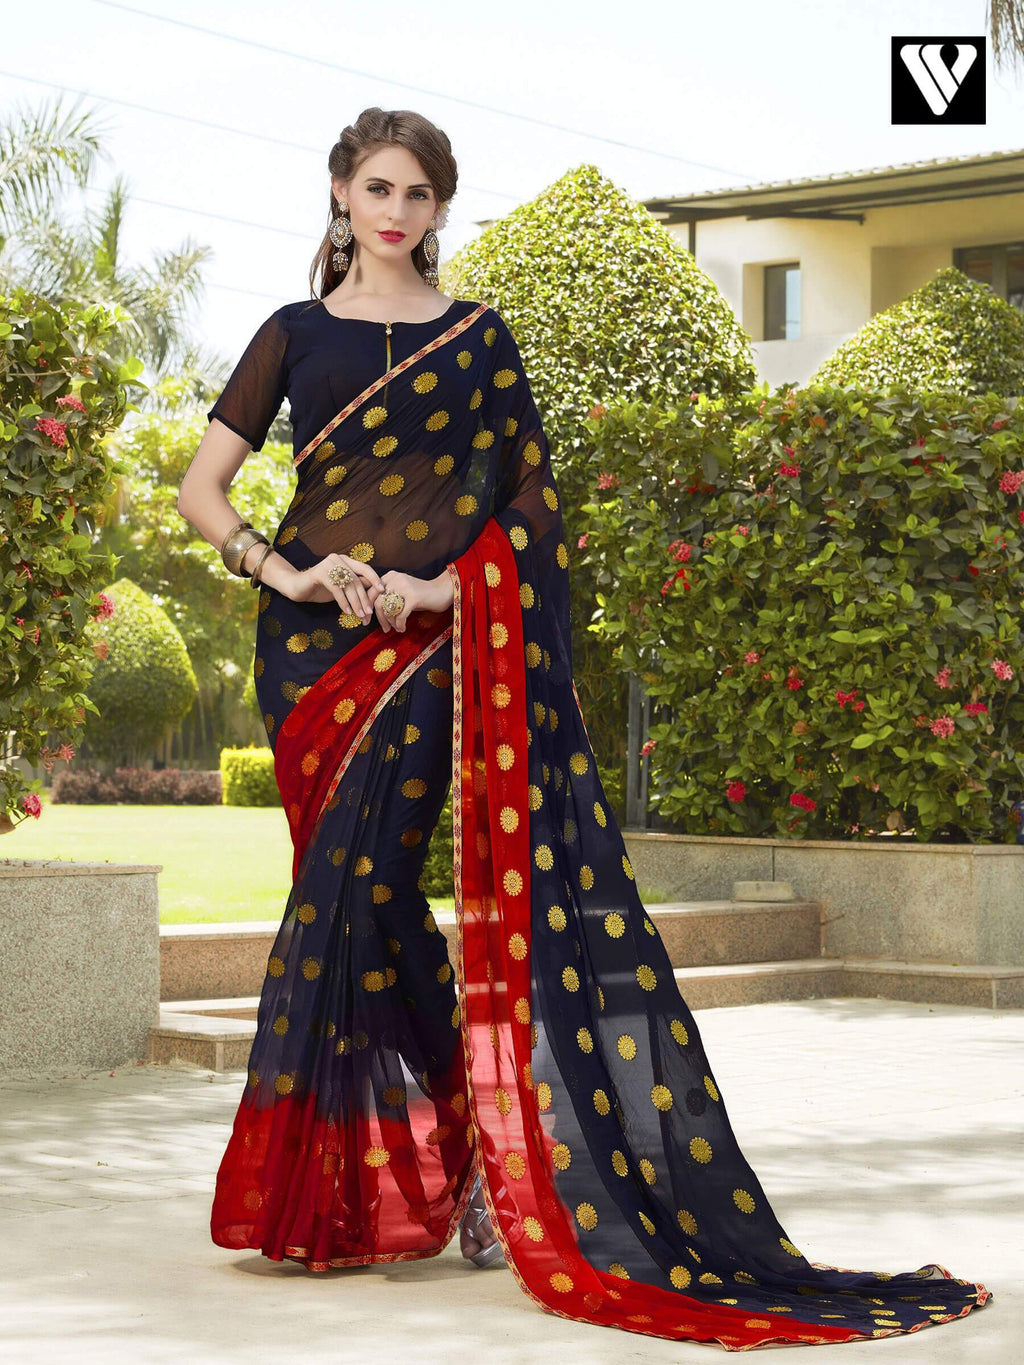 Latest Design Red and Black Chiffon Jaquard Saree